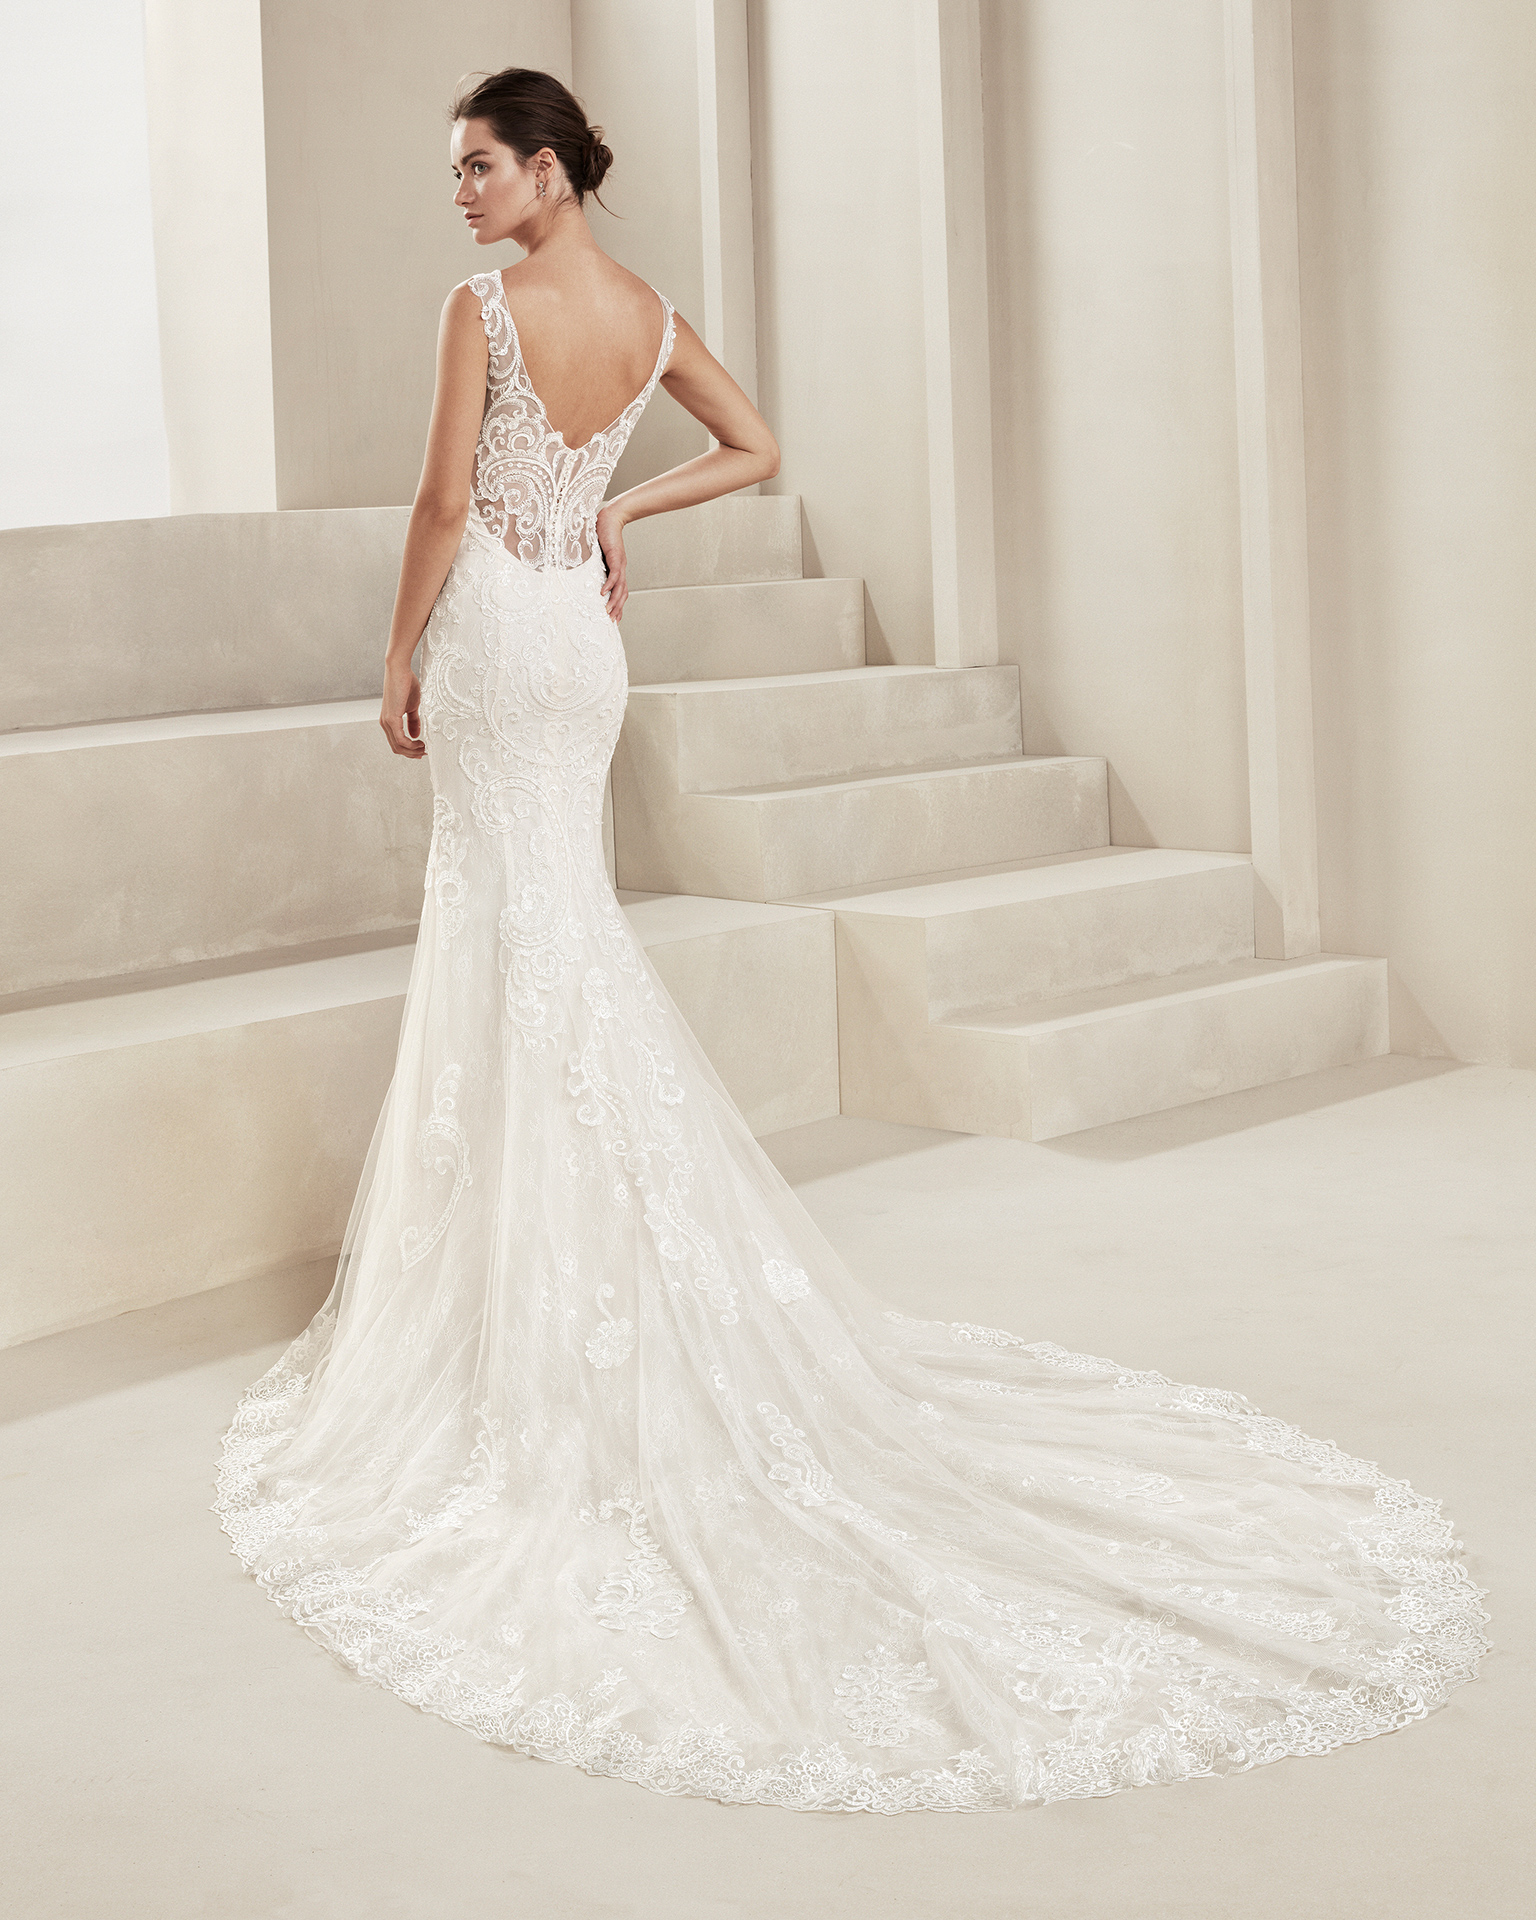 Mermaid-style beaded lace wedding dress. With V-neckline and low back. Available in natural. 2019 ALMA_NOVIA Collection.